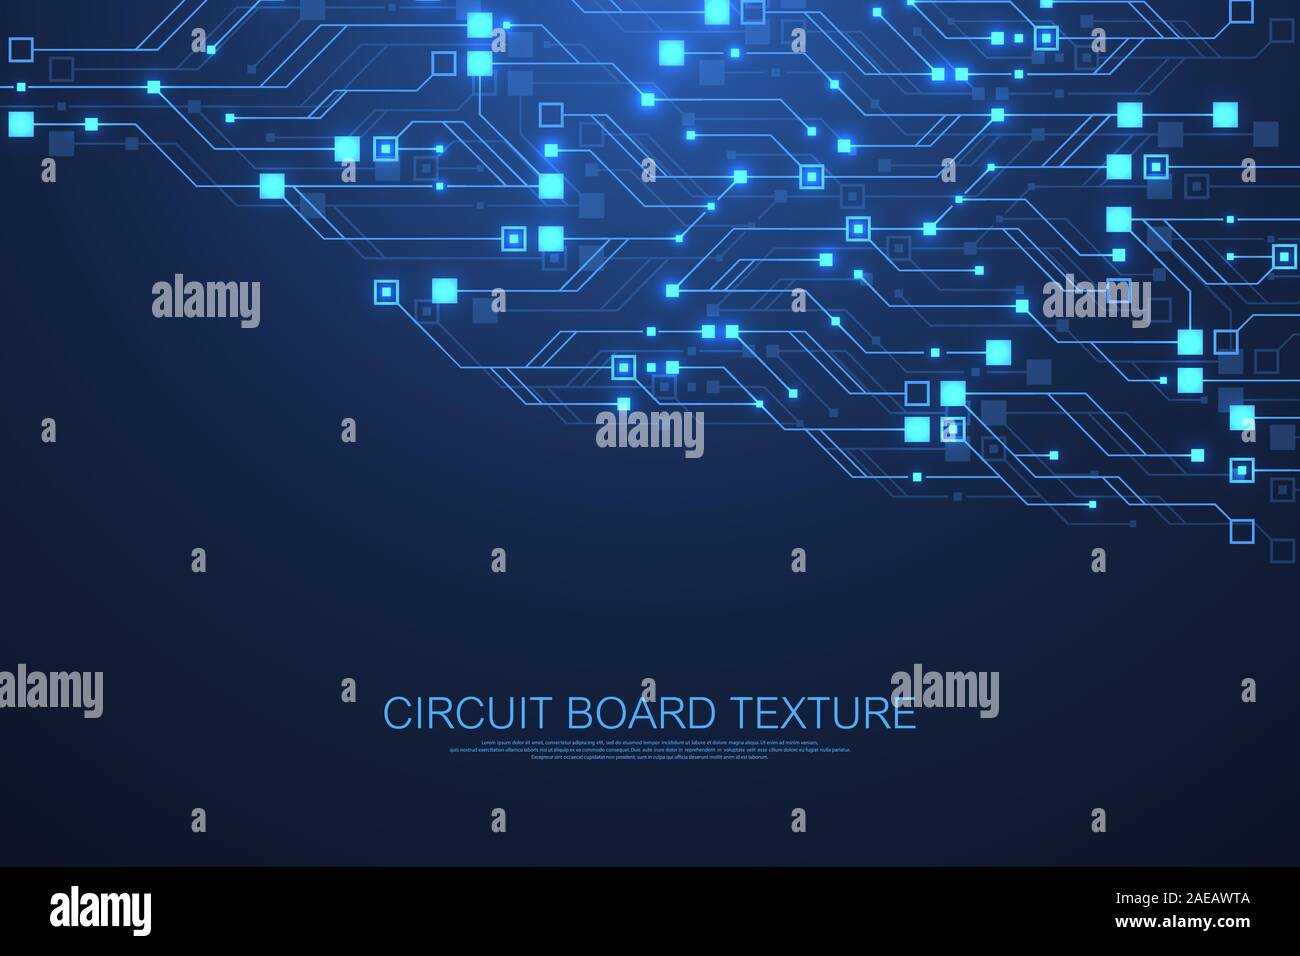 Technology Abstract Circuit Board Texture Background High